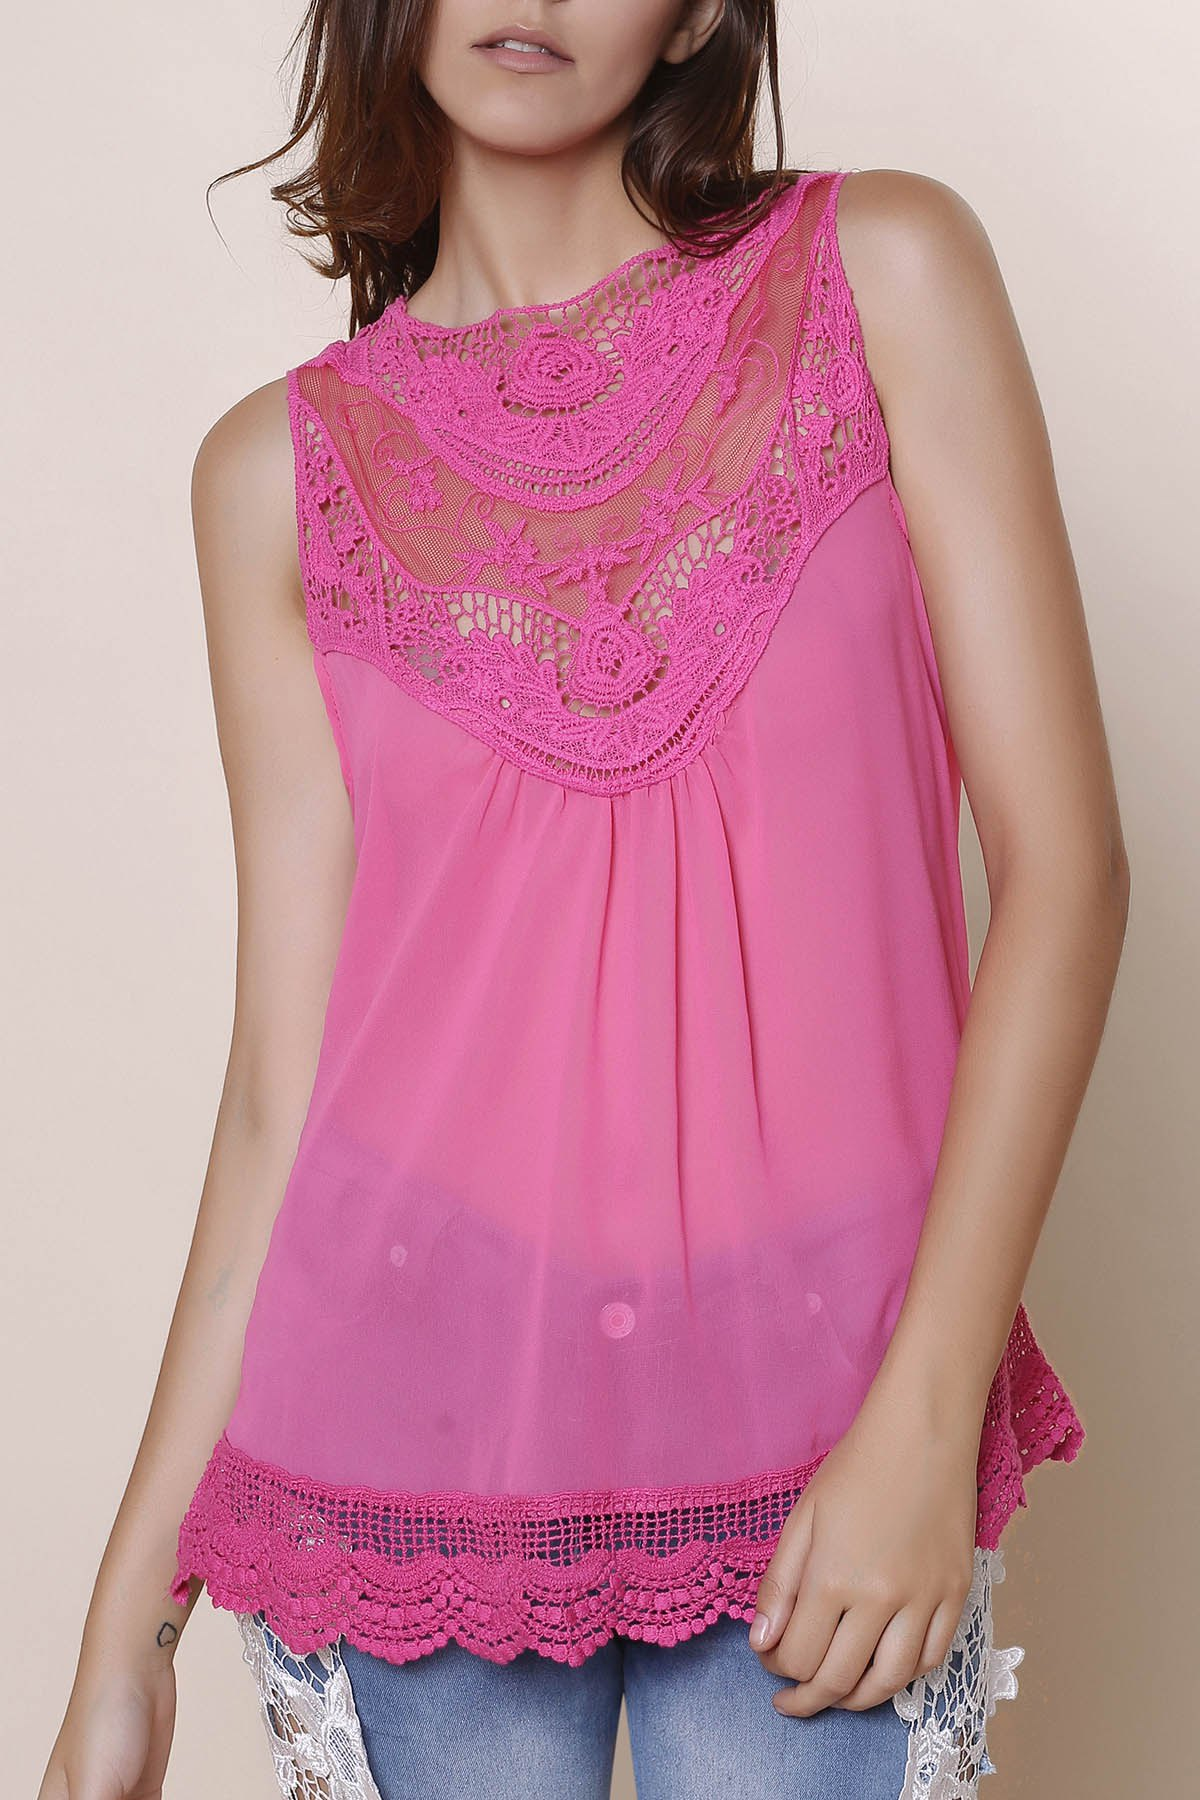 Sweet Solid Color Cut Out Lace Spliced Tank Top For Women - L ROSE